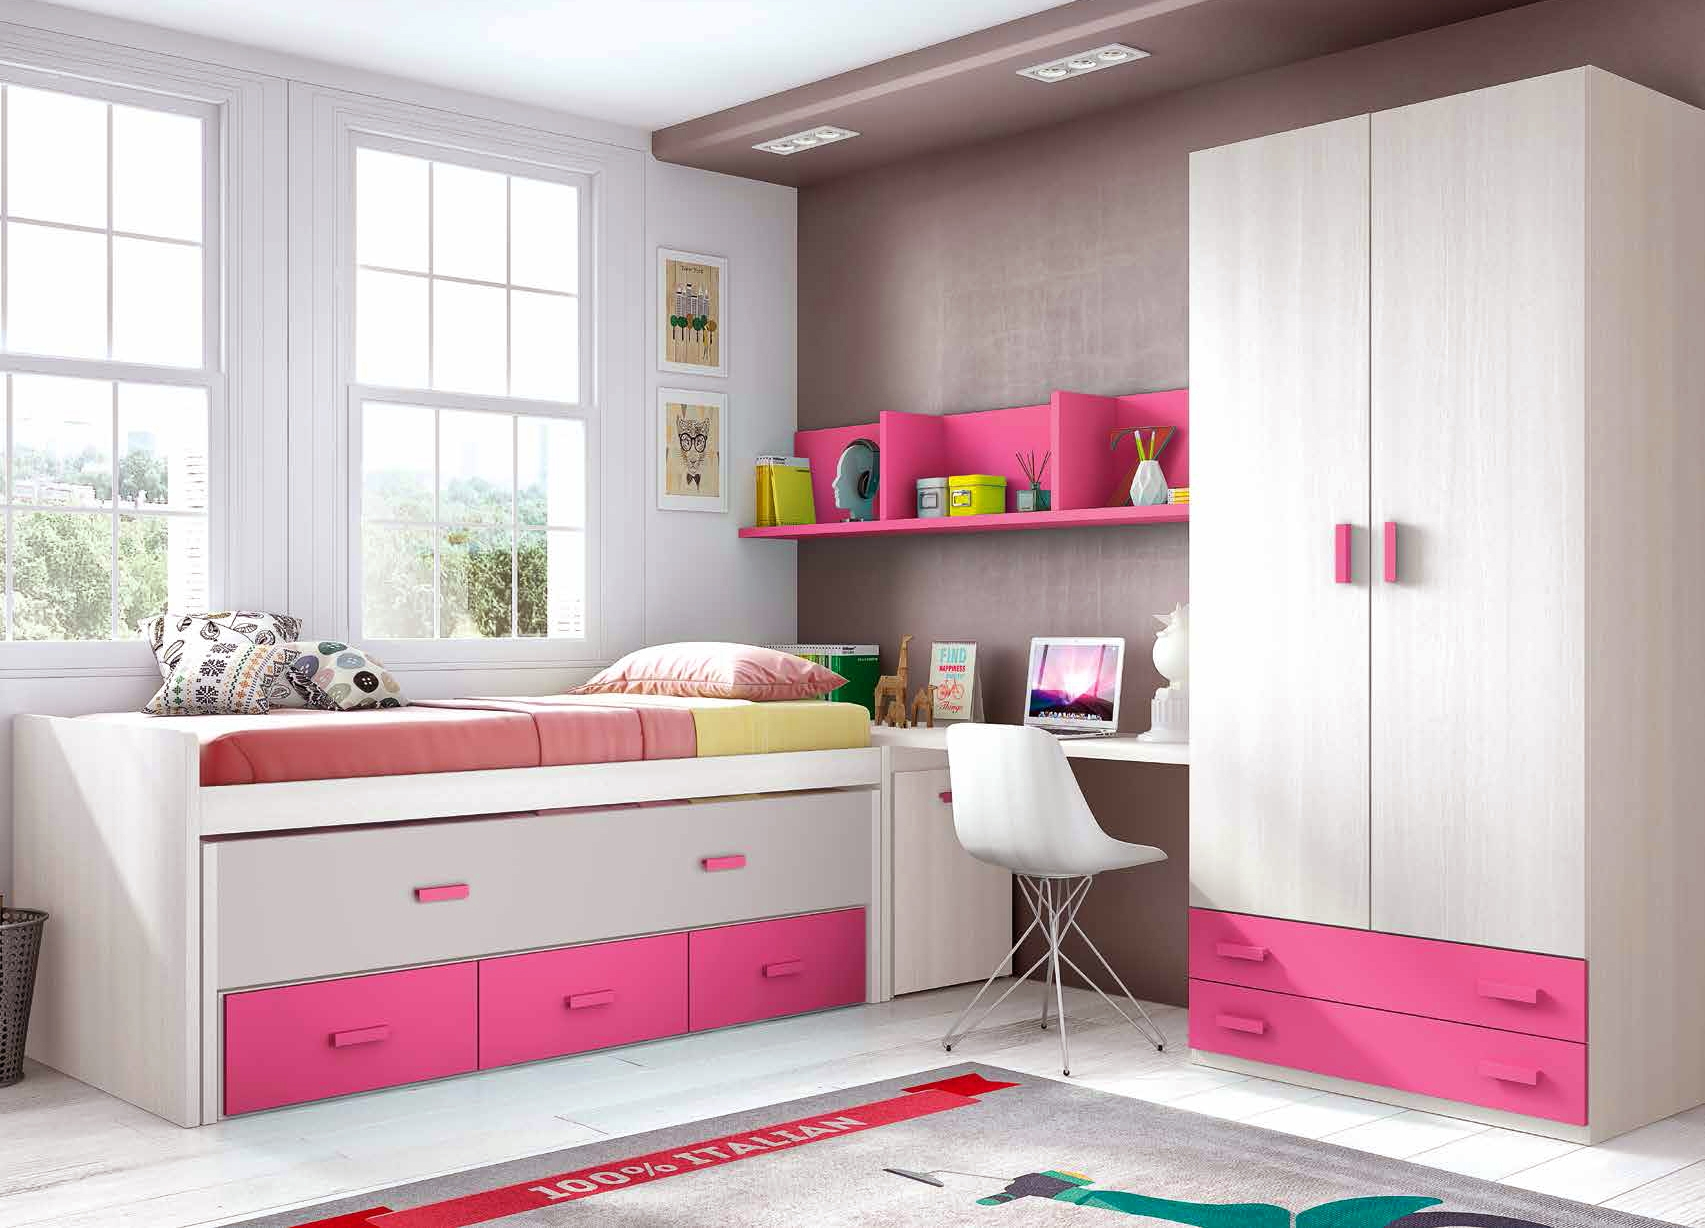 chambre fille rose et fun avec un lit sur lev glicerio so nuit. Black Bedroom Furniture Sets. Home Design Ideas